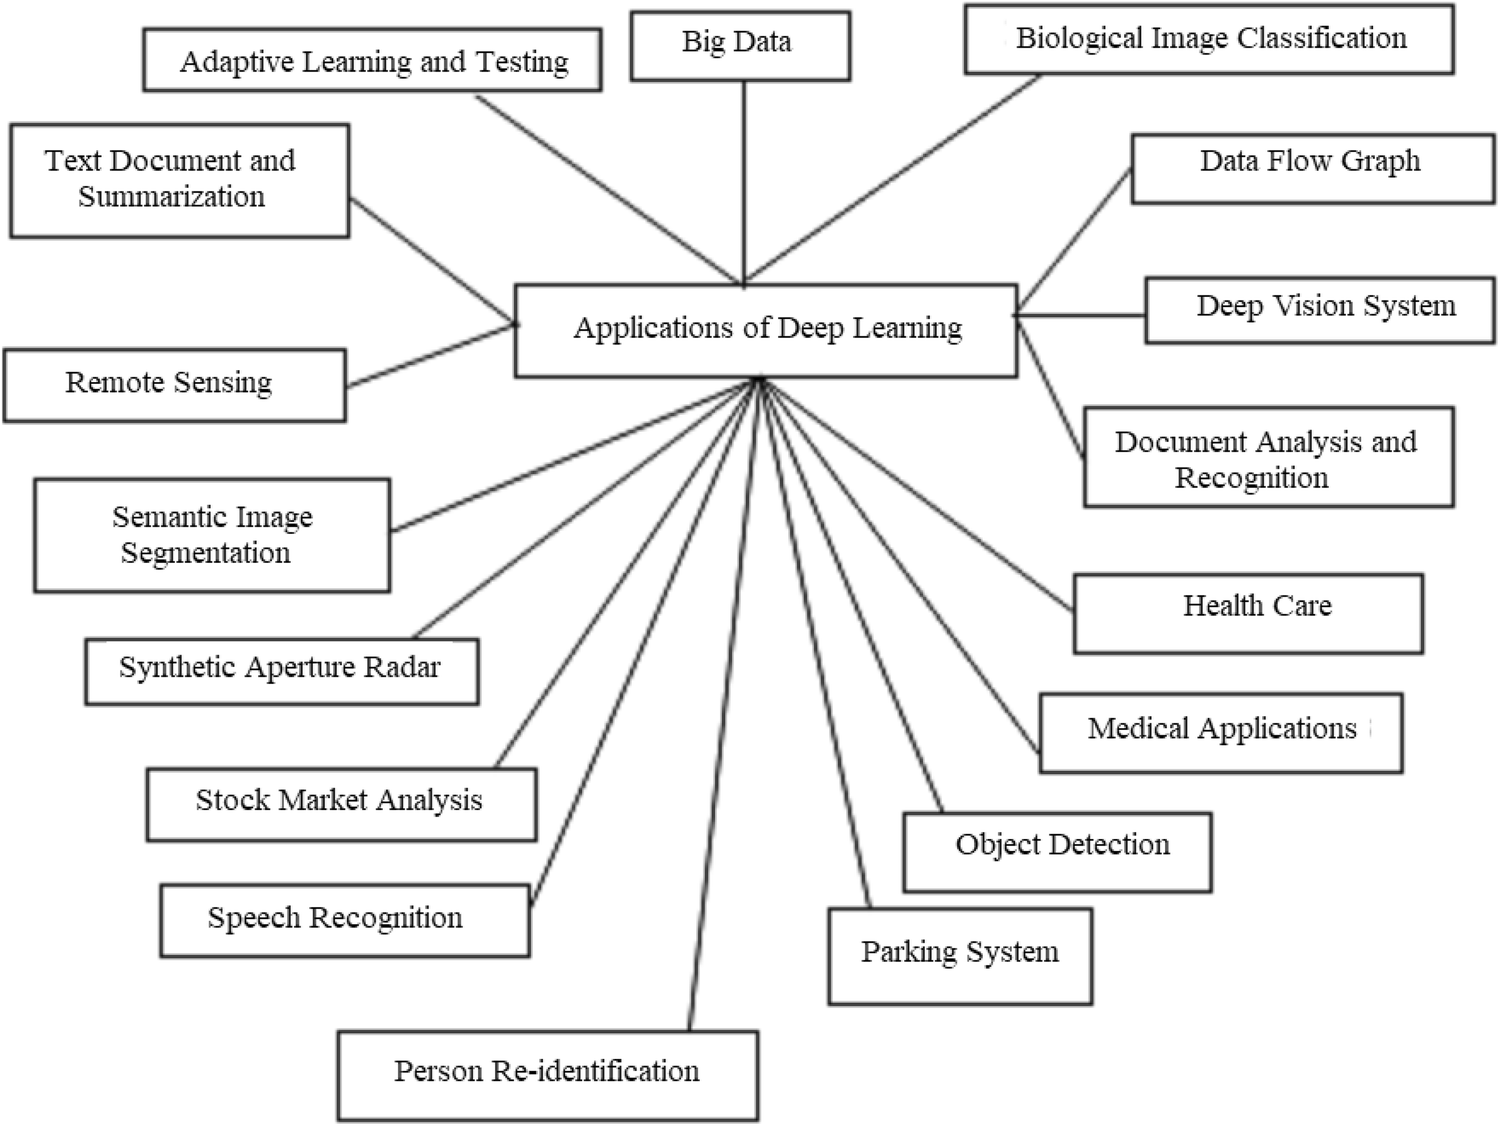 A Survey of Deep Learning and Its Applications: A New